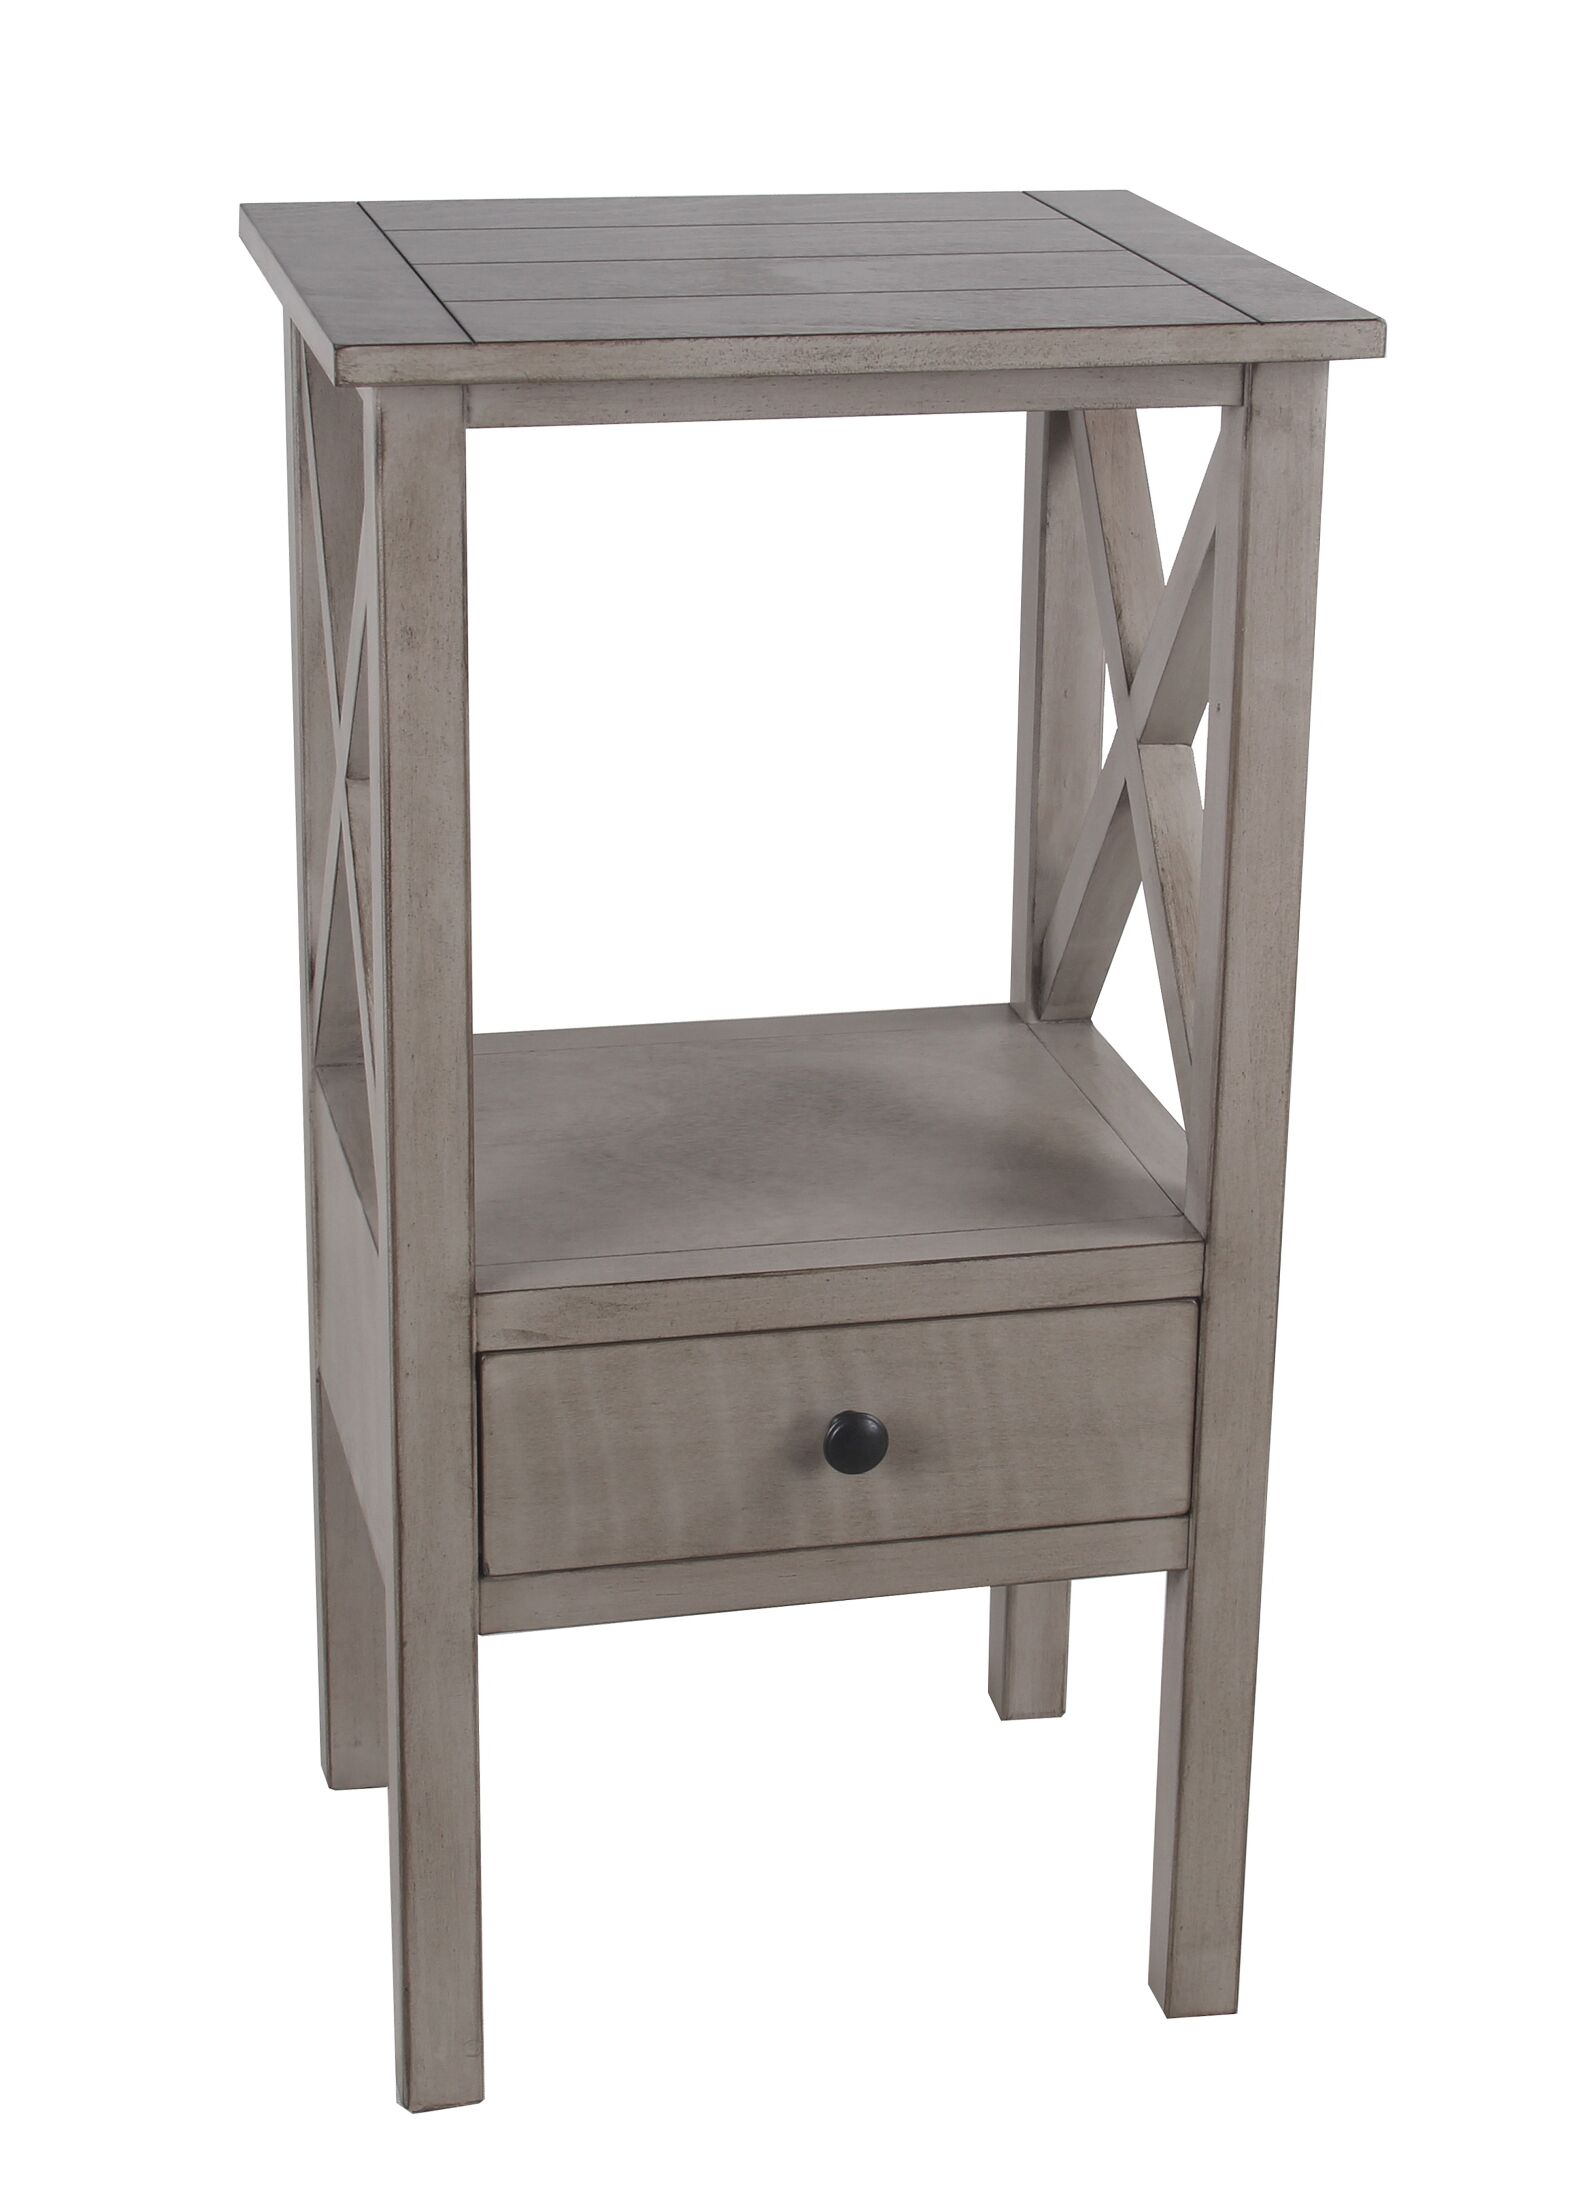 Kilraghts 1 Drawer End Table with Storage Color: Oyster